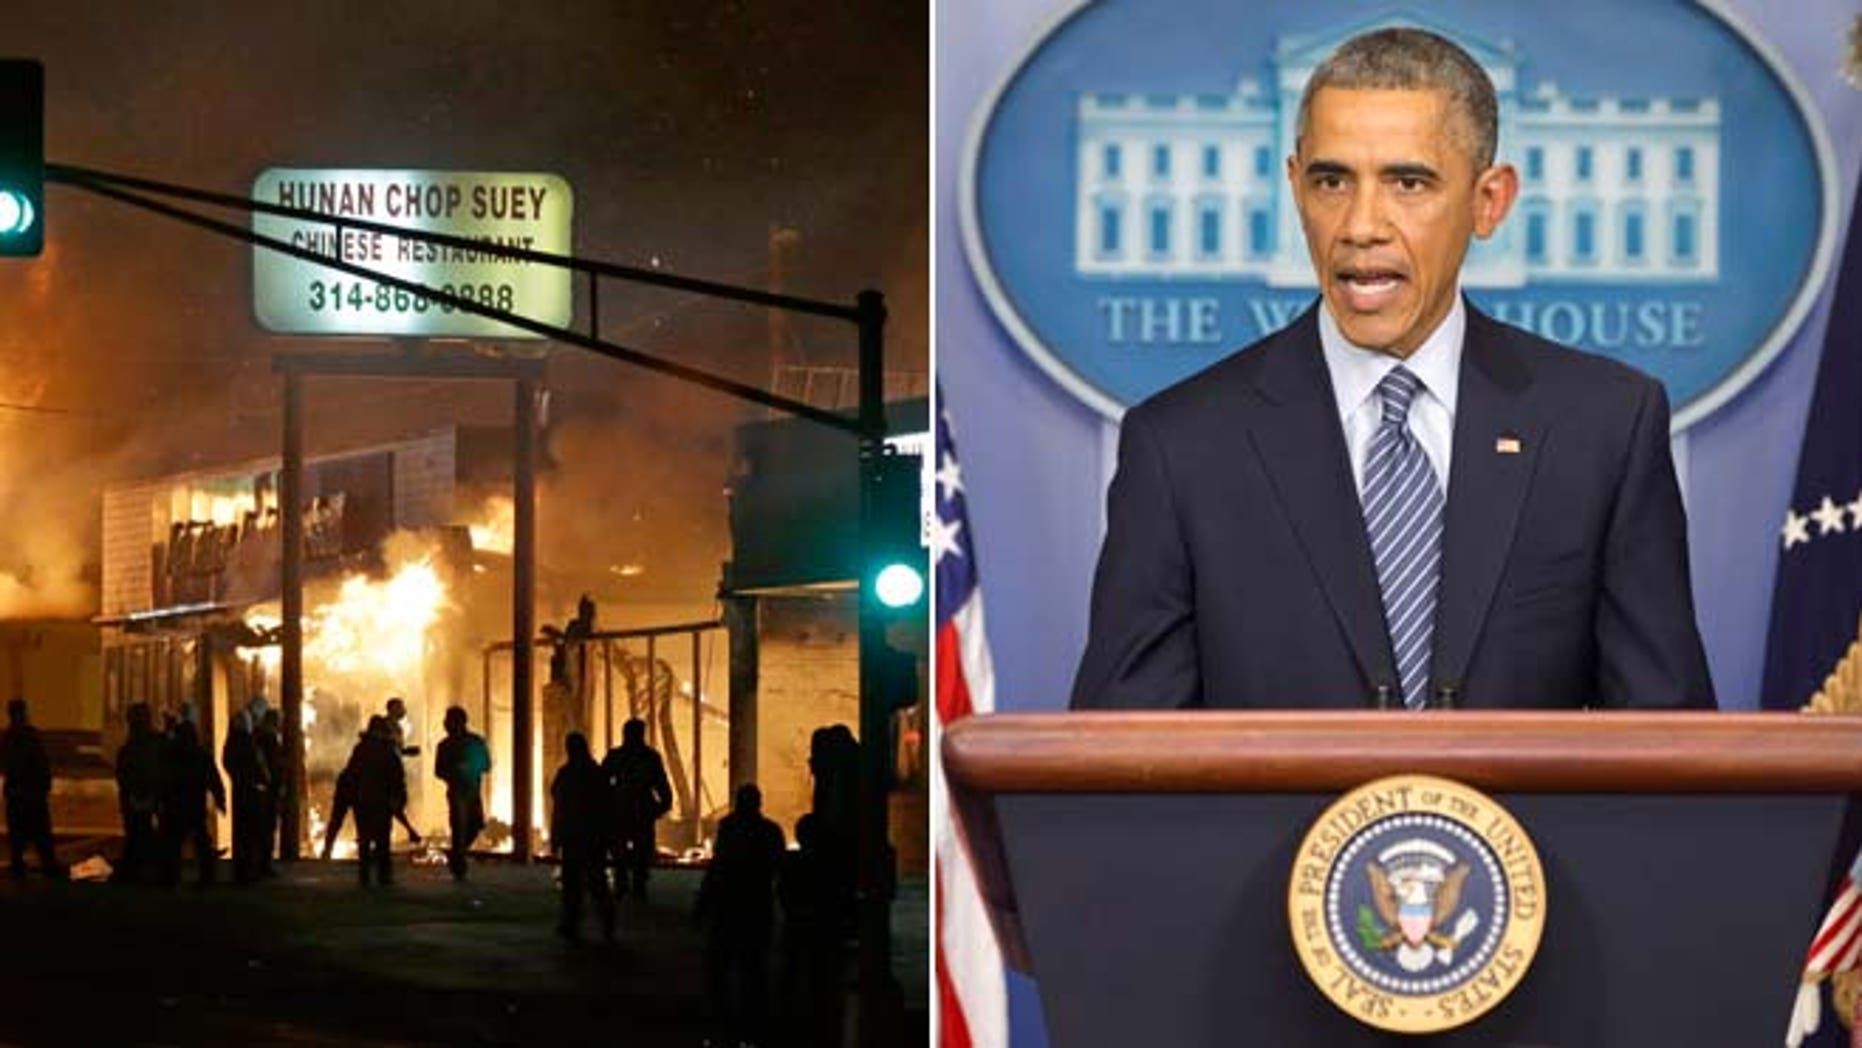 These Tuesday, Nov. 24, 2014 photos show people gathering around burning stores in Ferguson, Mo. and President Barack Obama speaking to the media in the briefing room of the White House in Washington, after the Ferguson grand jury decided not to indict police officer Darren Wilson in the shooting death of Michael Brown.